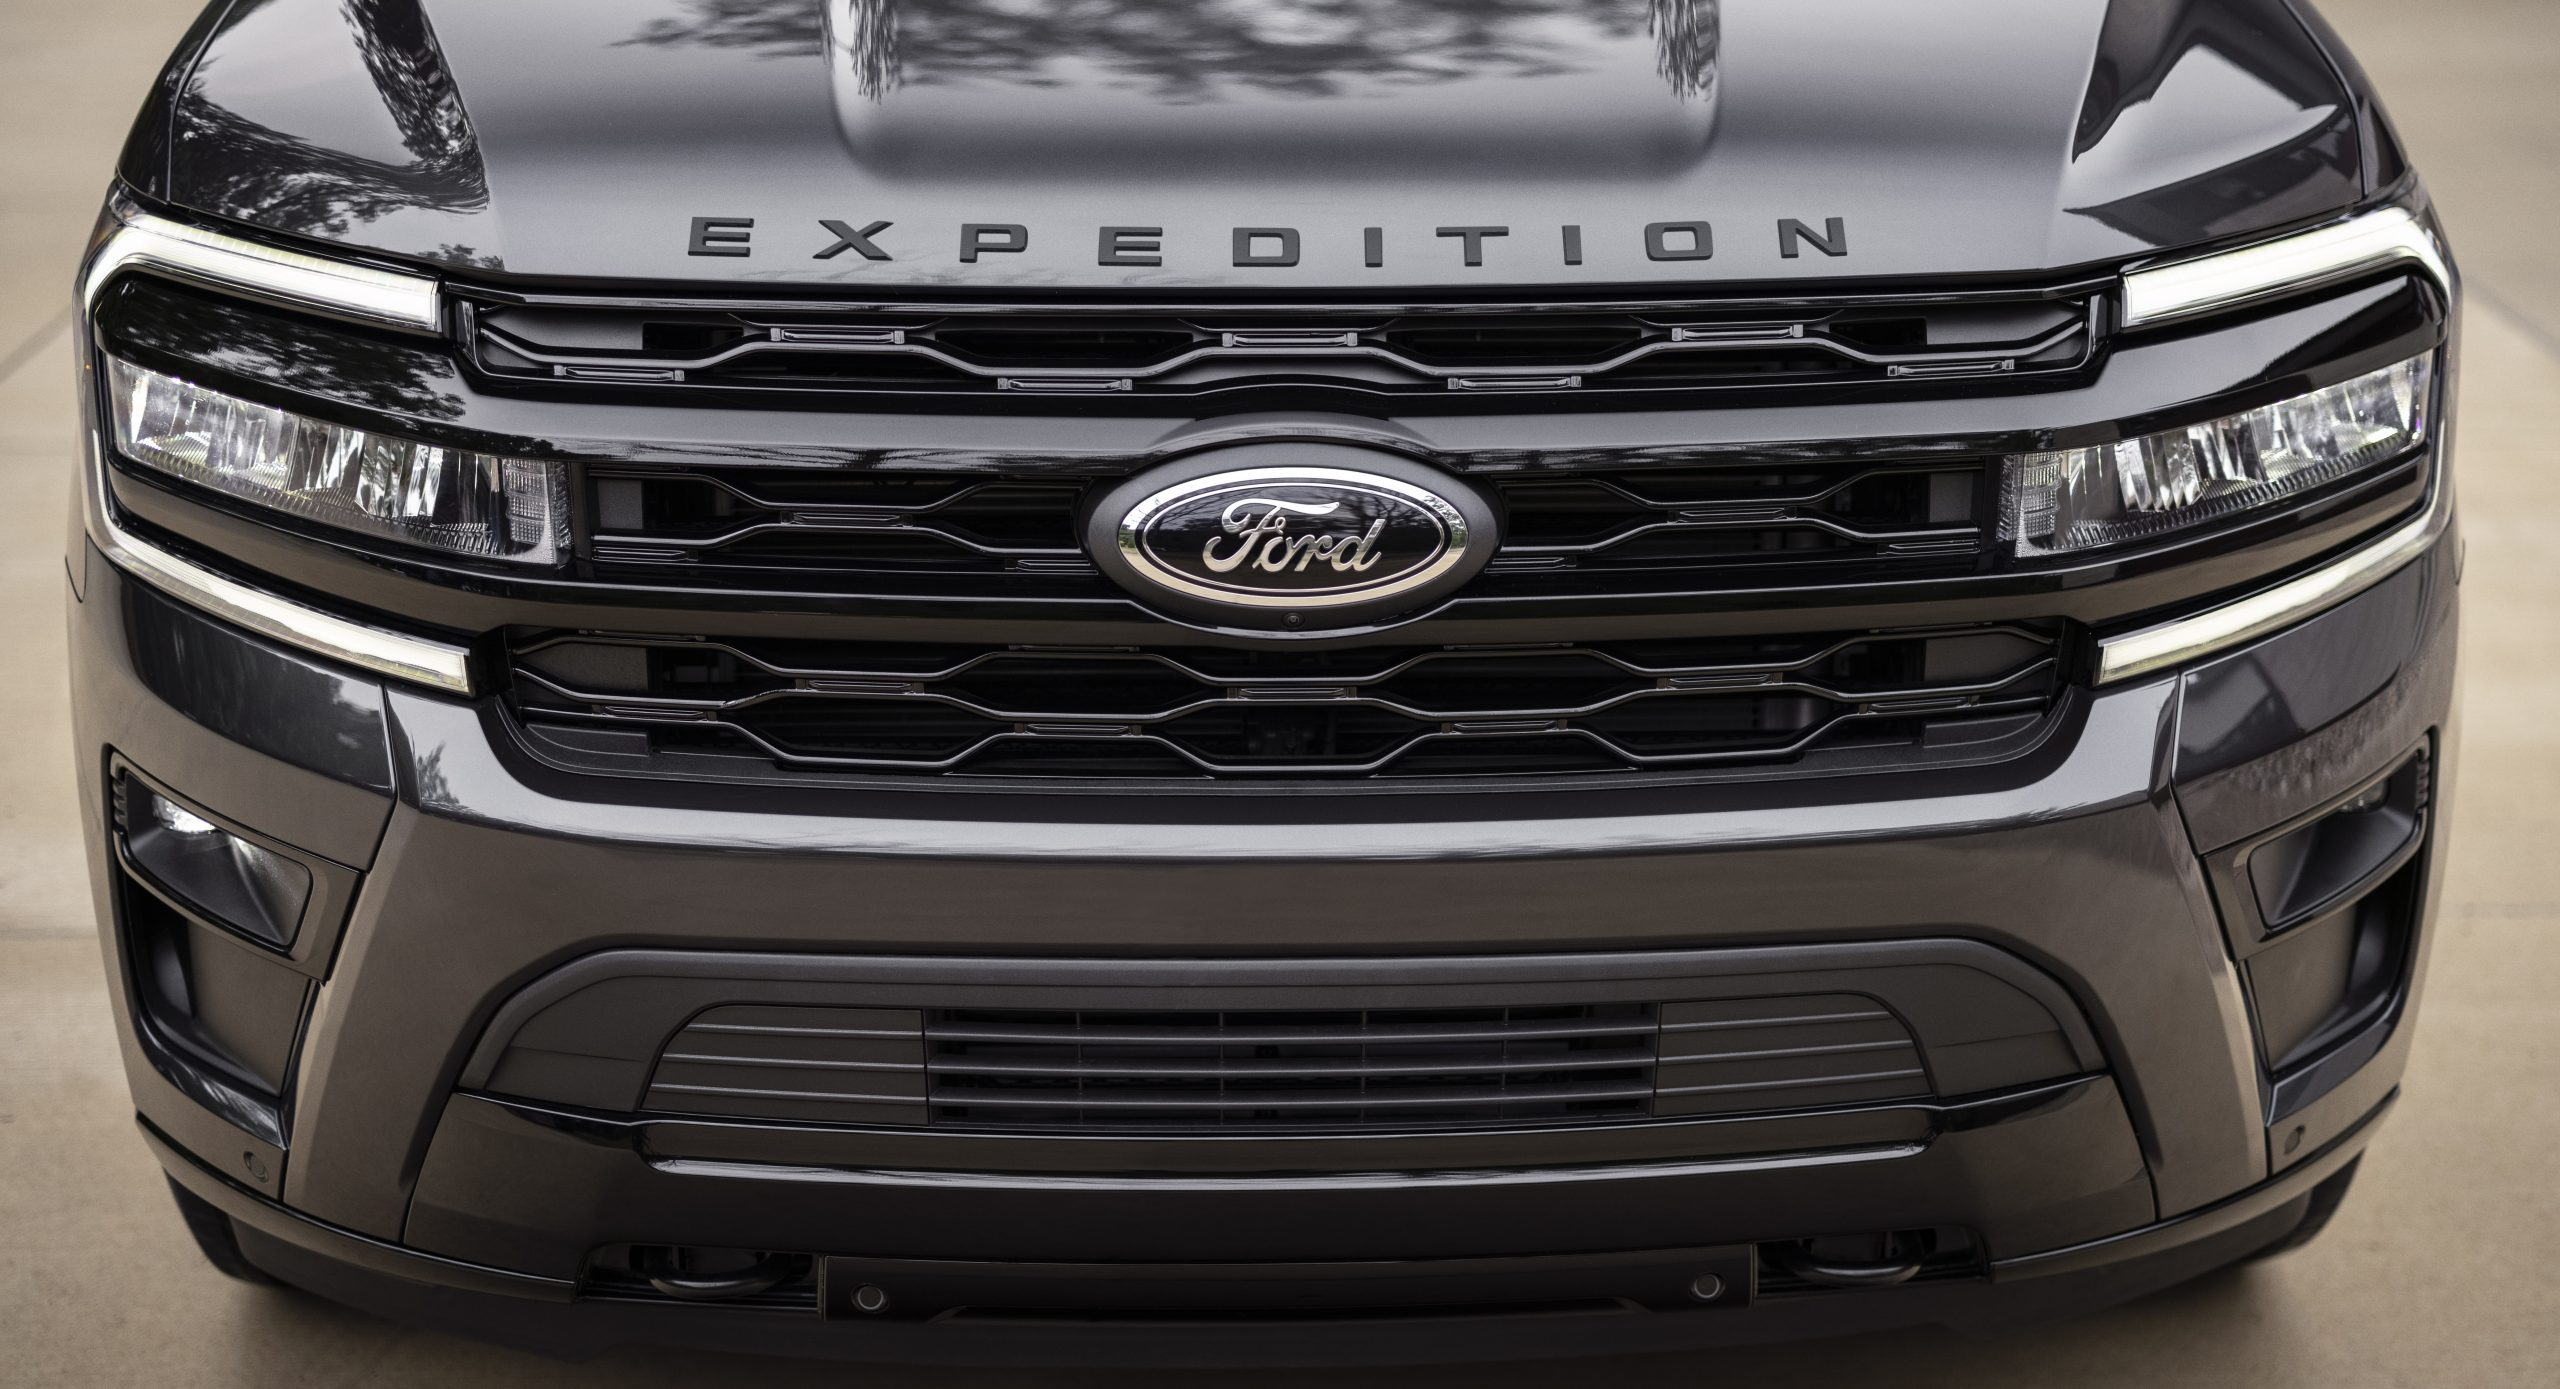 2022 Ford Expedition Stealth Performance front end